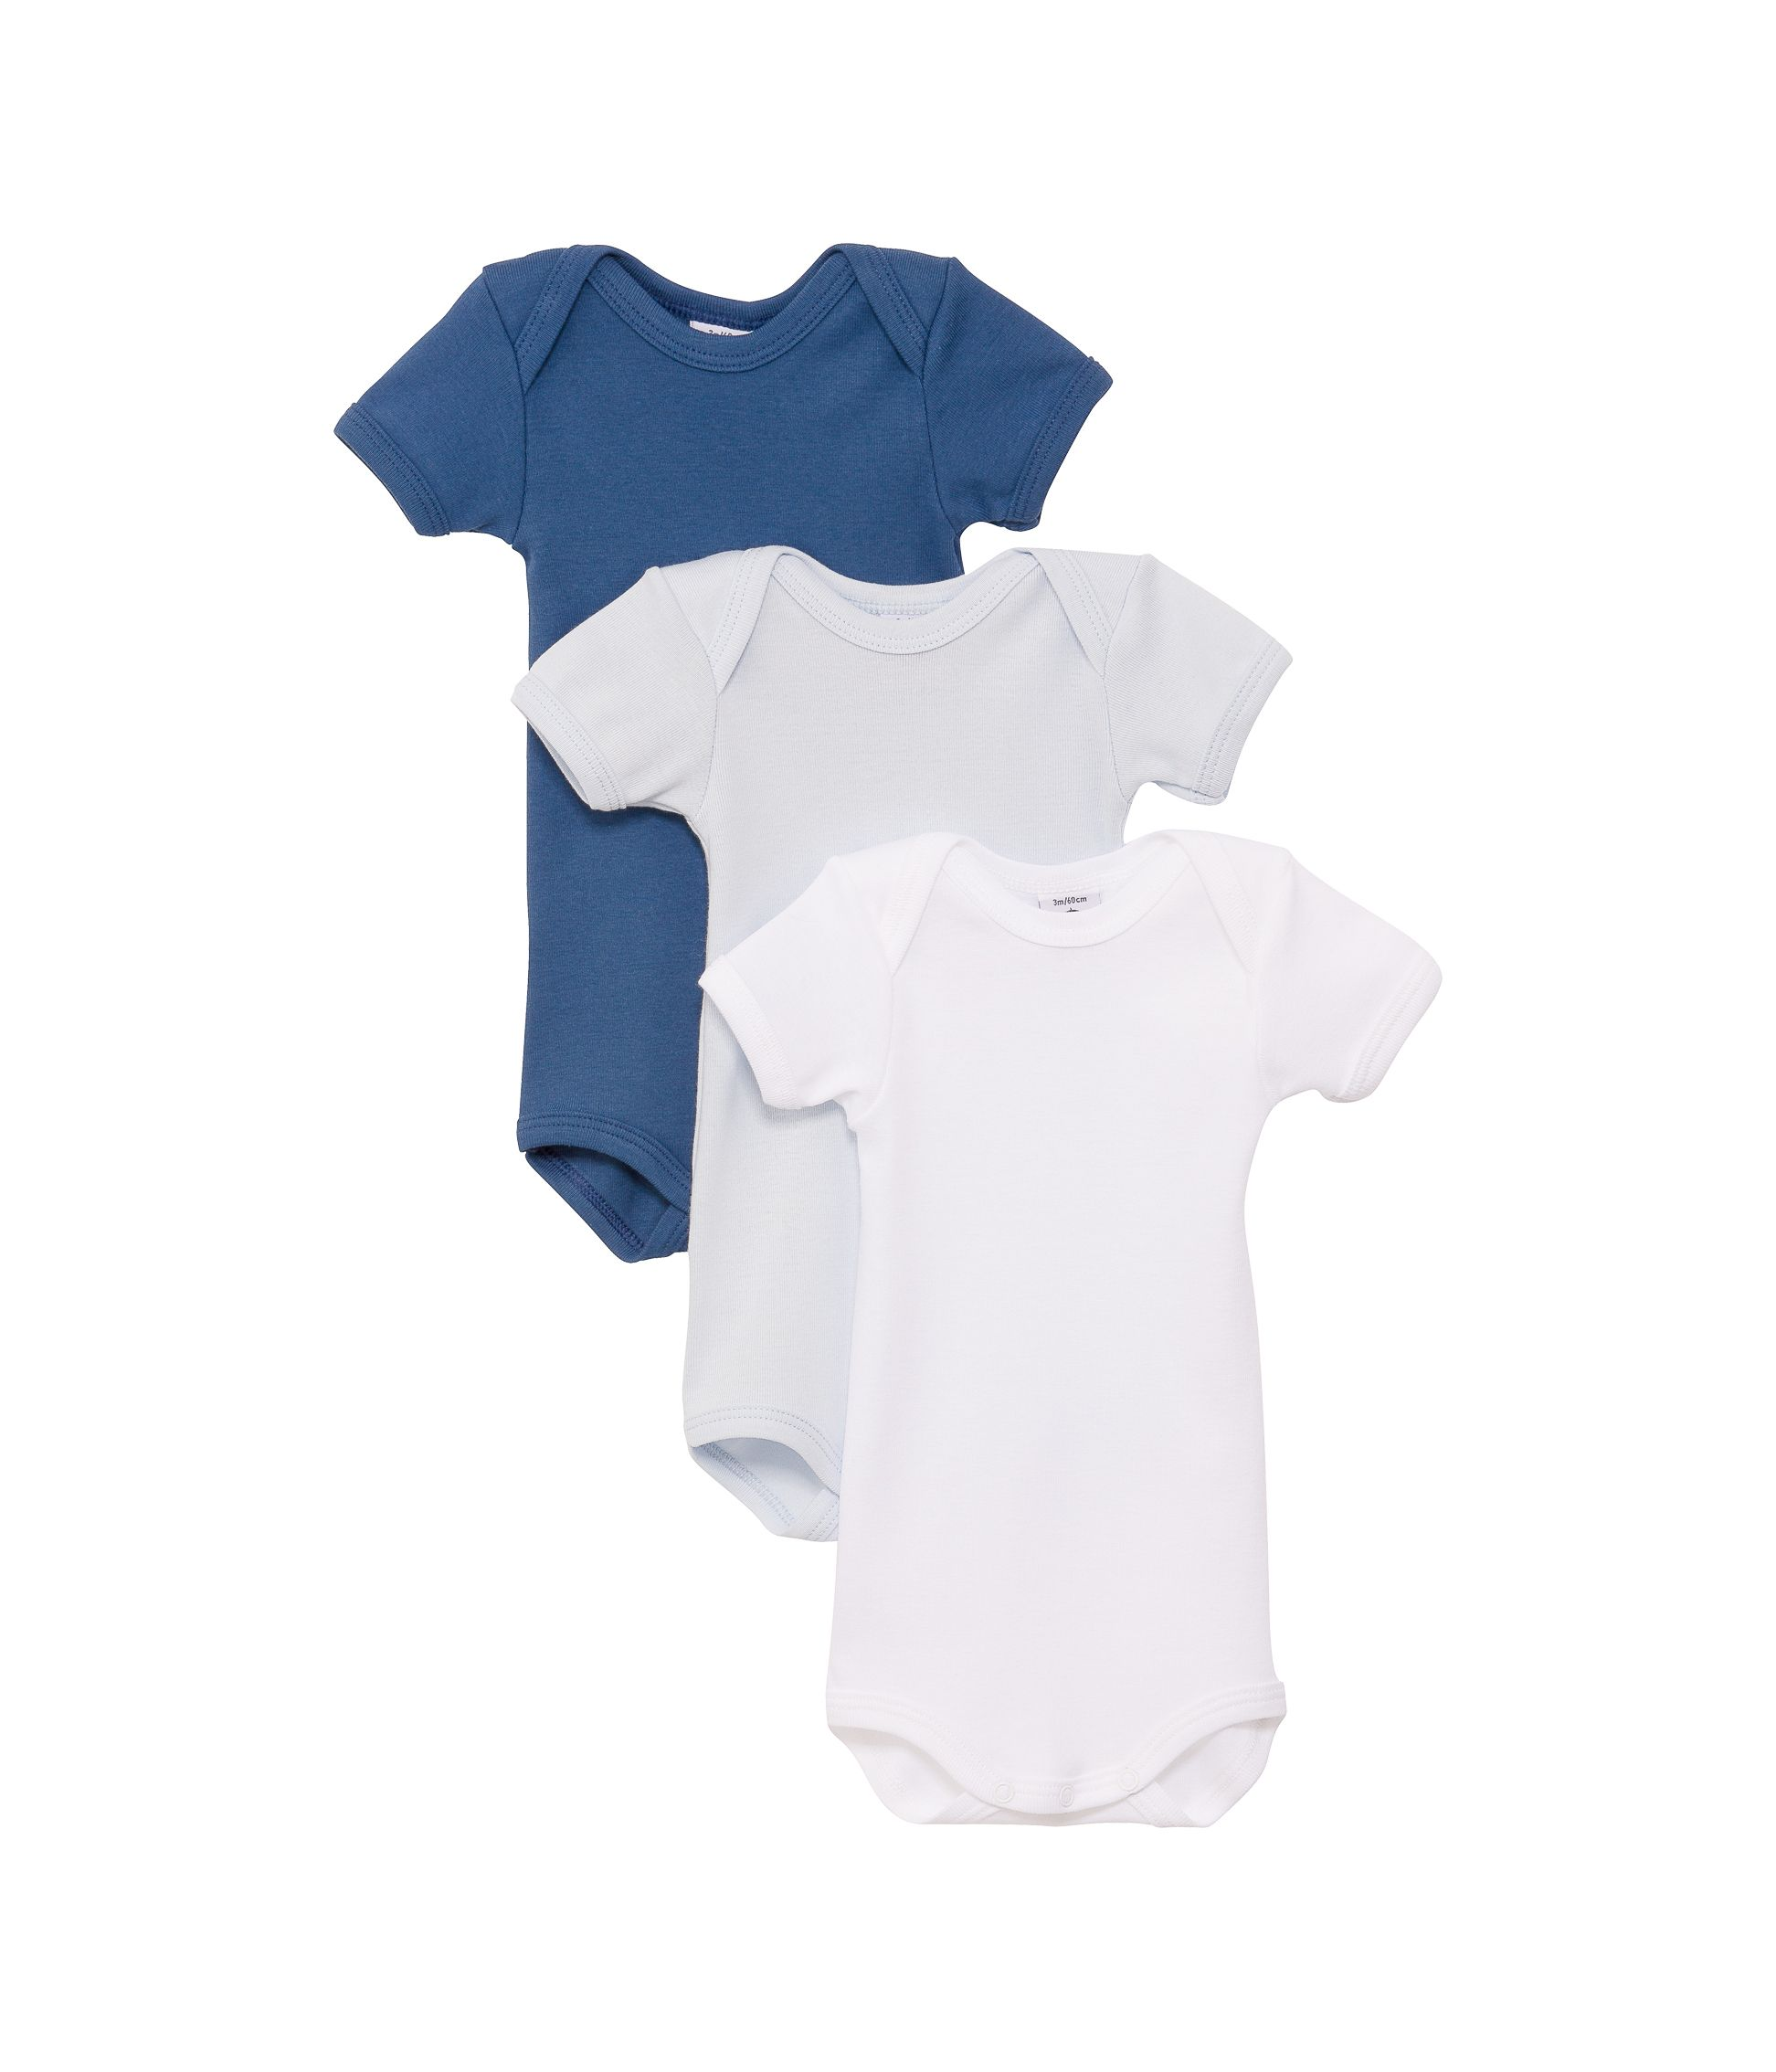 Baby boys 3 pack of short sleeve bodysuits